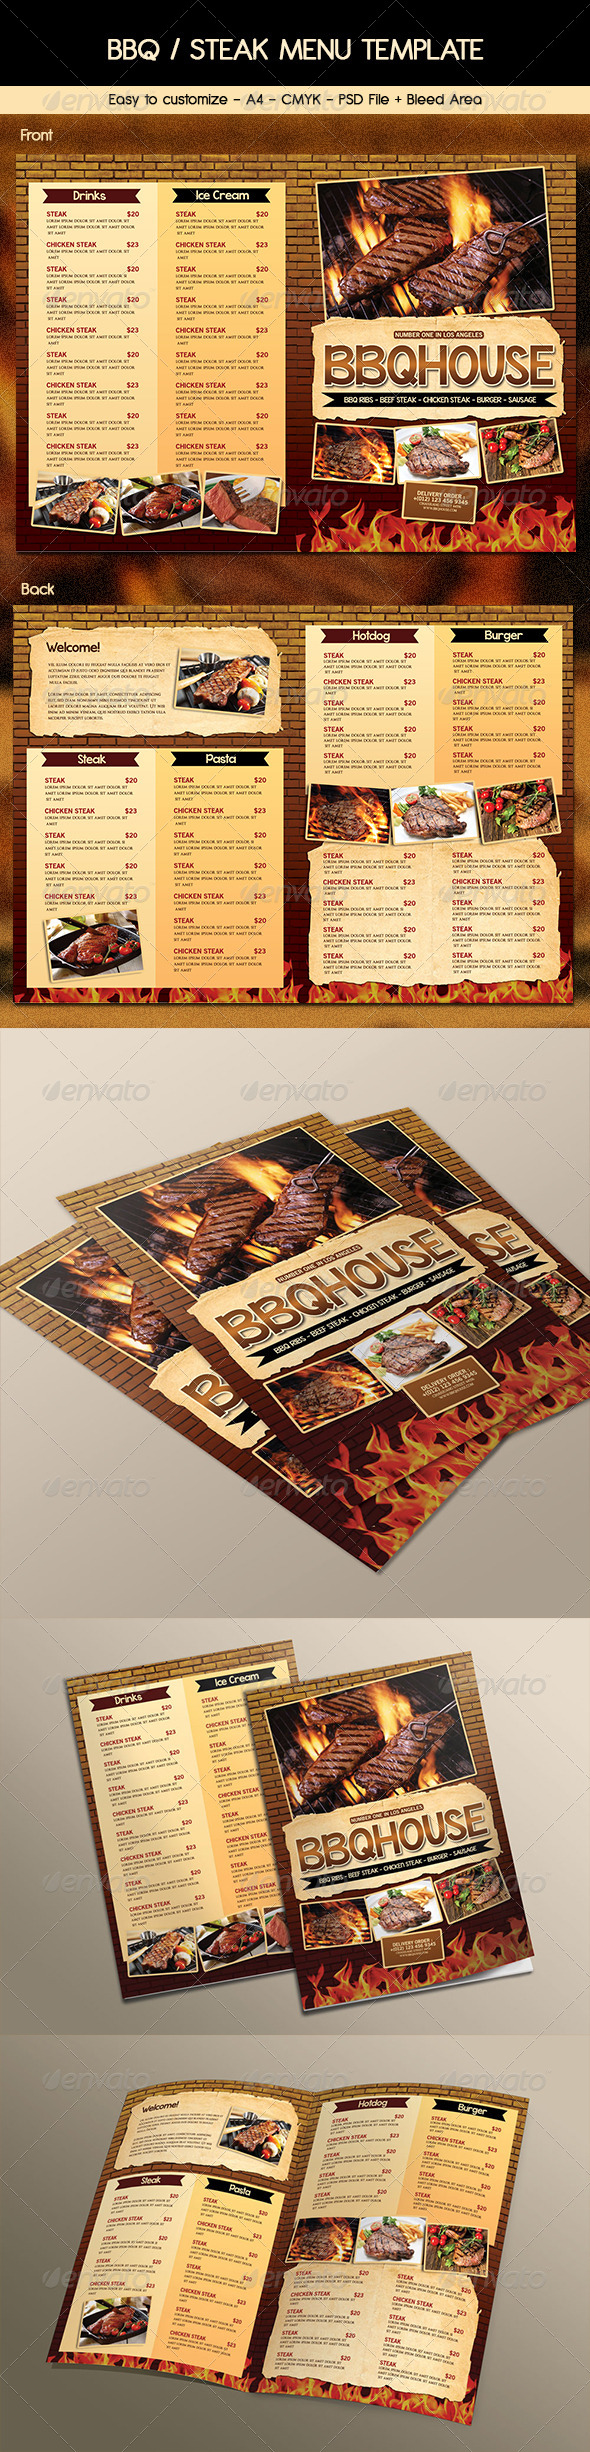 realistic graphic download ai psd http jquery re pinterest